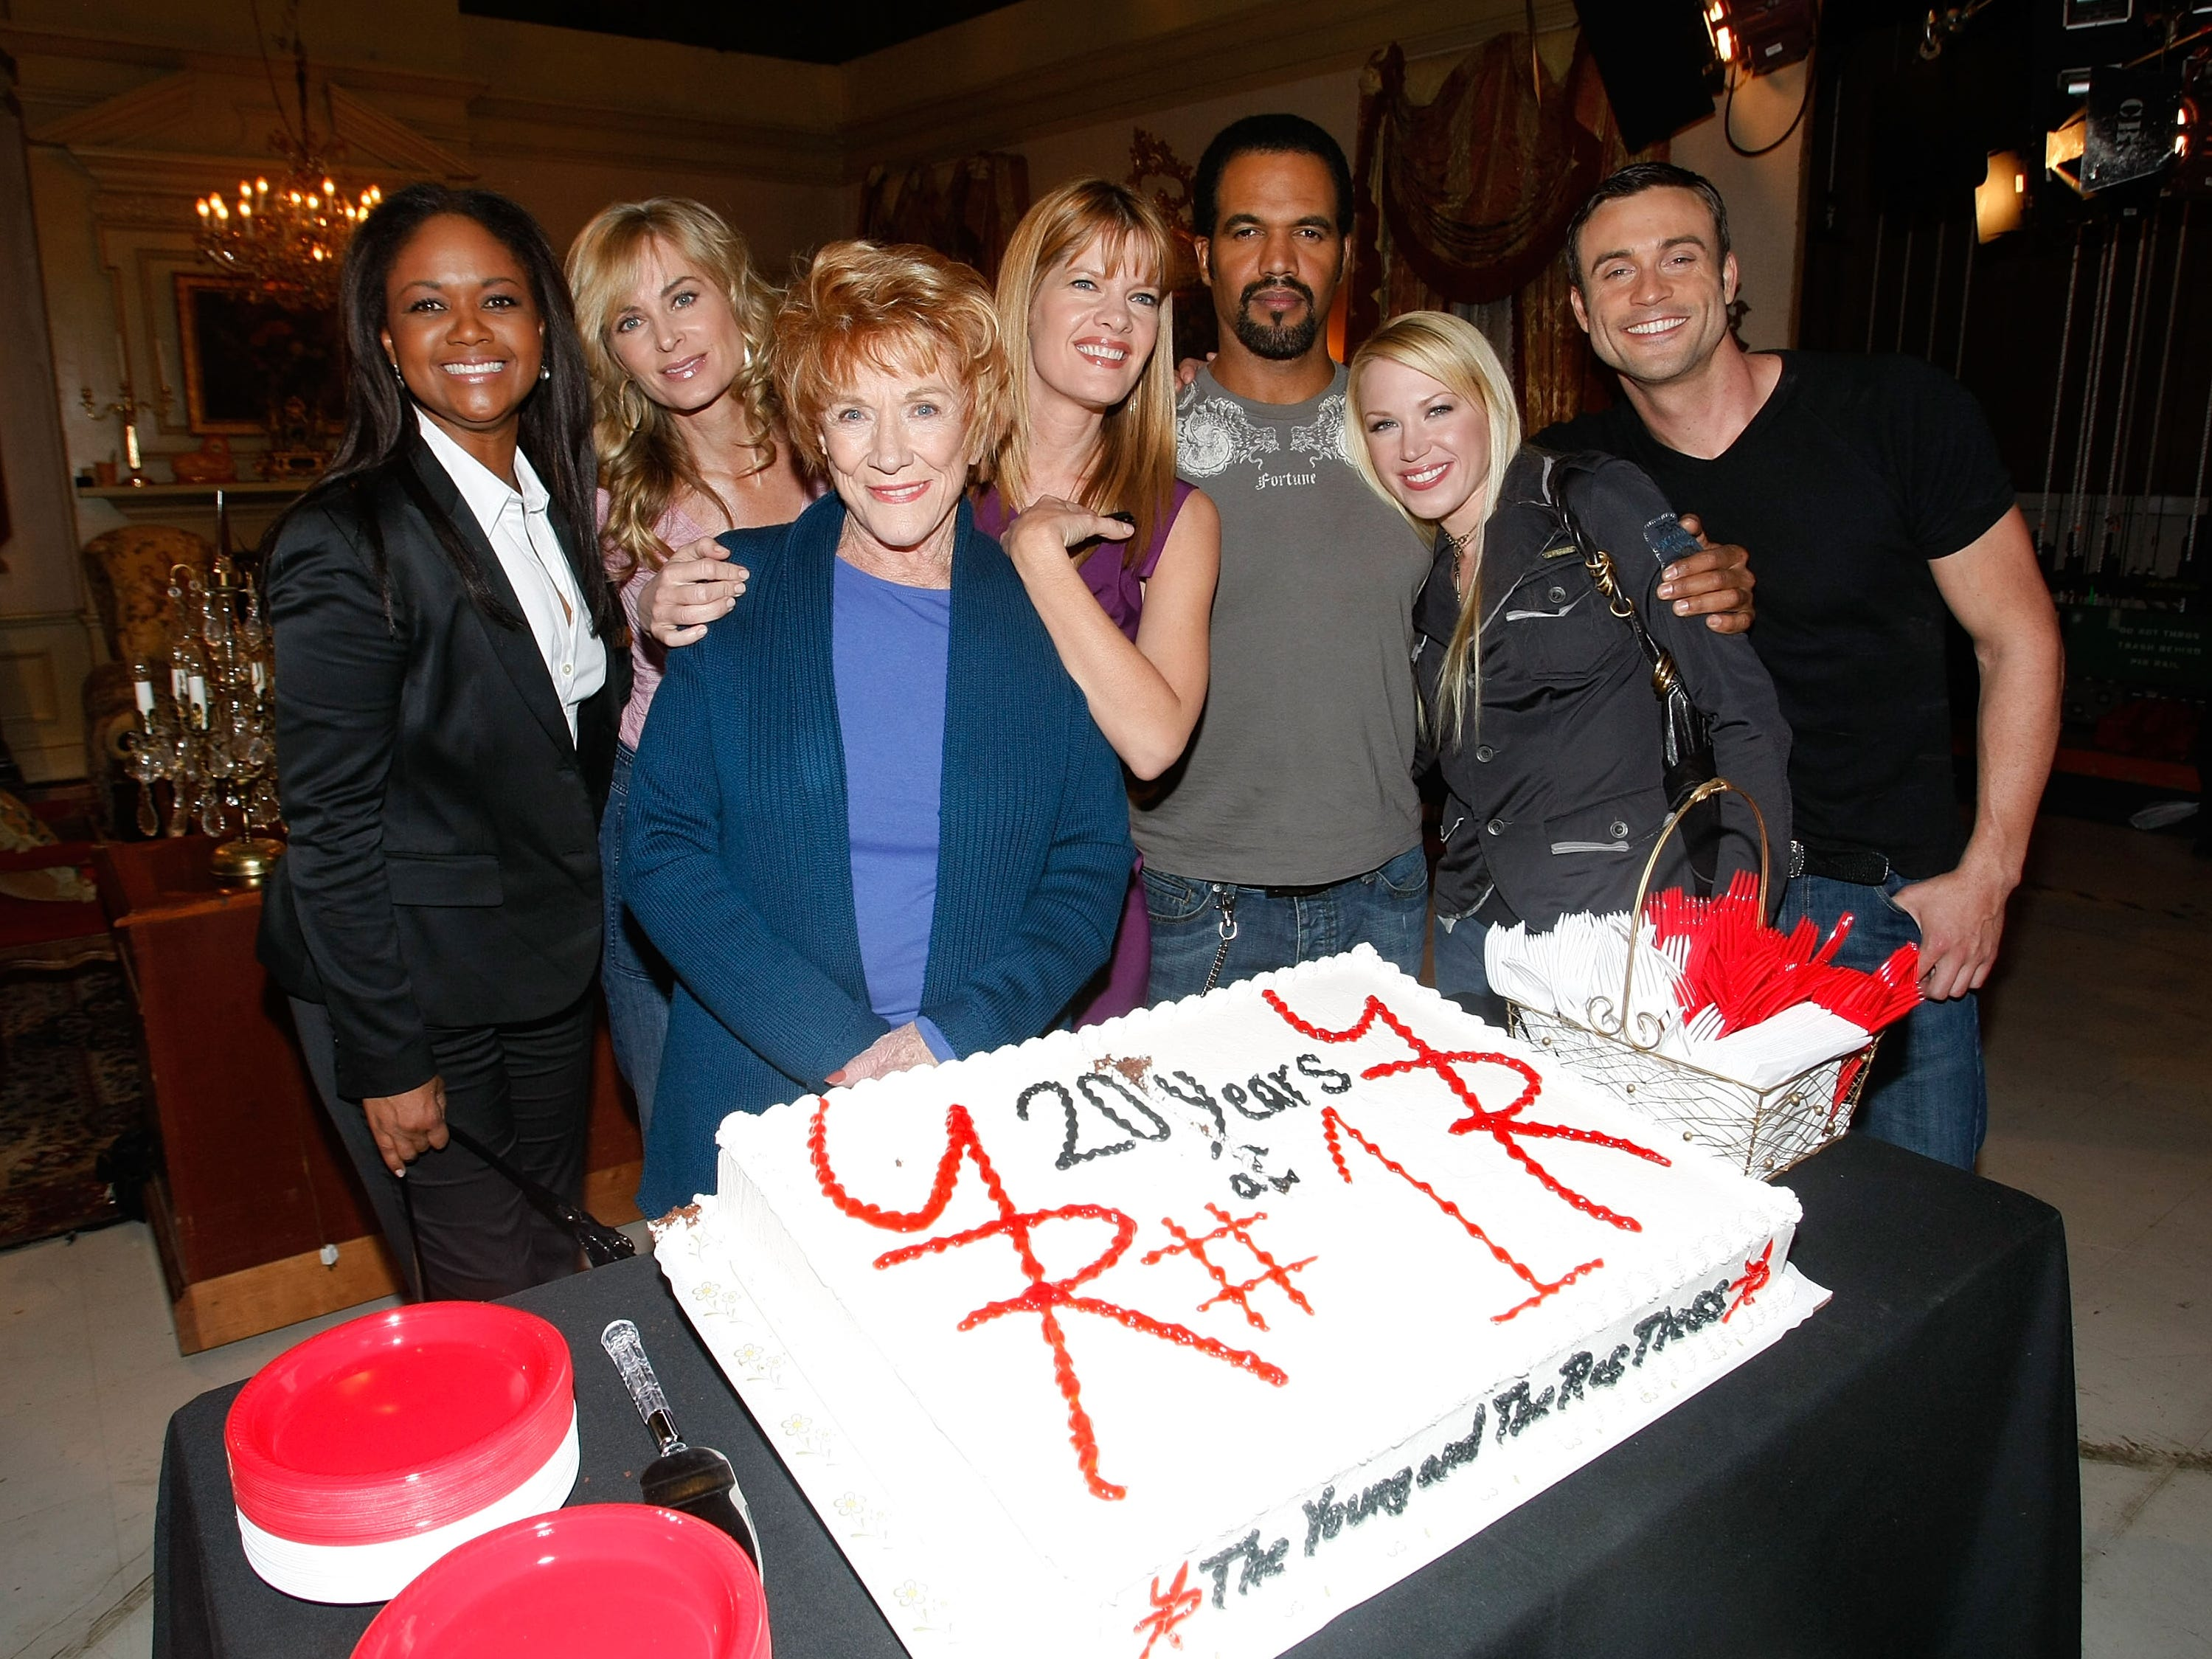 "Cast members of ""The Young and the Restless"" actors Tonya Lee Williams, Eileen Davidson, Jeanne Cooper, Michelle Stafford, Kristoff St. John, Adrienne Frantz and Daniel Godbard attend the cake cutting ceremony celebrating ""The Young and the Restless"" staying the number one rated daytime drama series for twenty years straight Dec. 11, 2008 in Los Angeles."